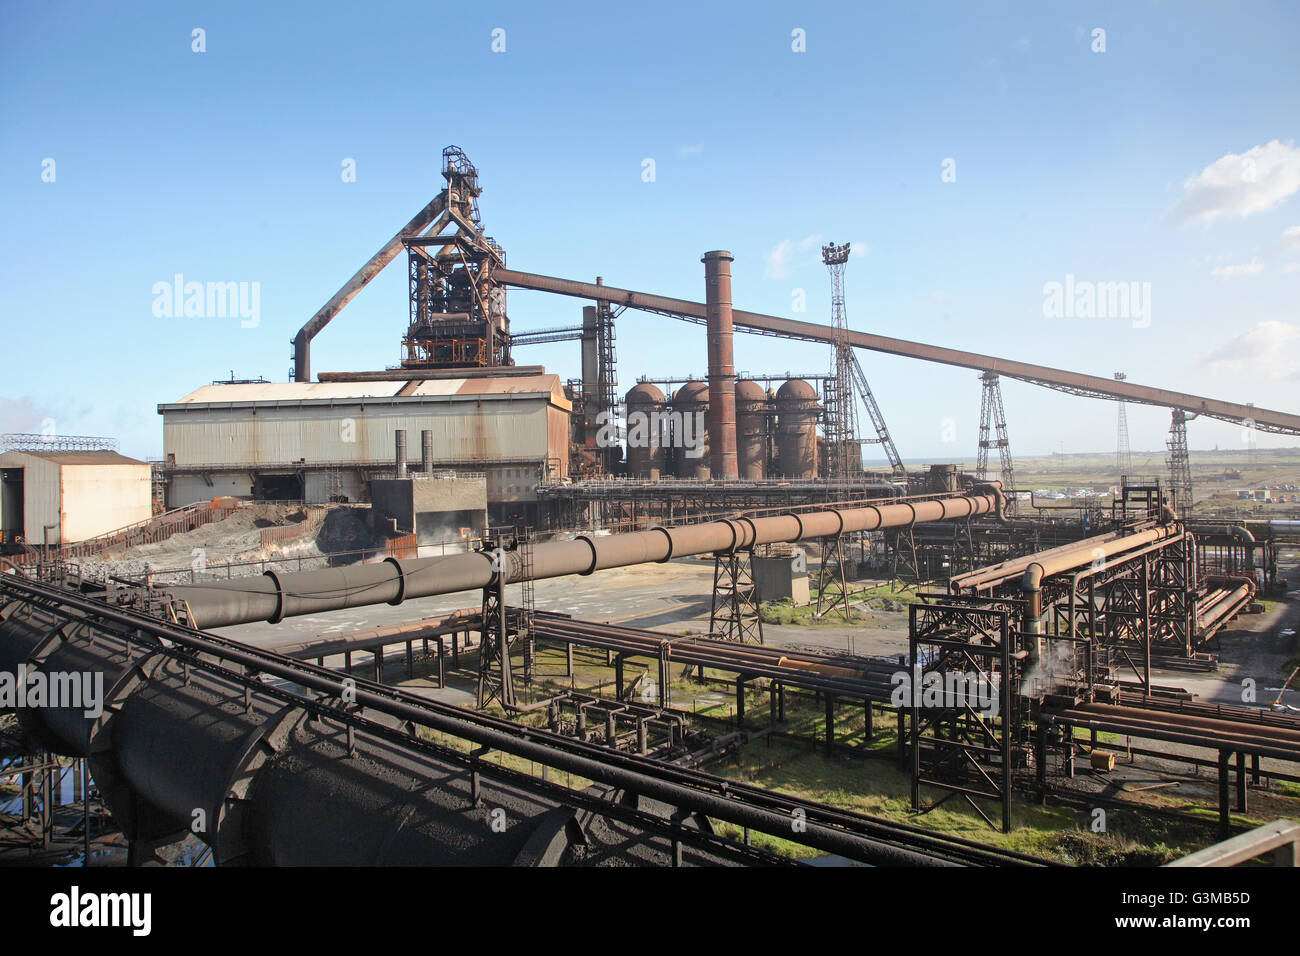 High level view of the blast furnace at Redcar Steelworks, Teeside, UK. Taken in 2008 before closure. - Stock Image